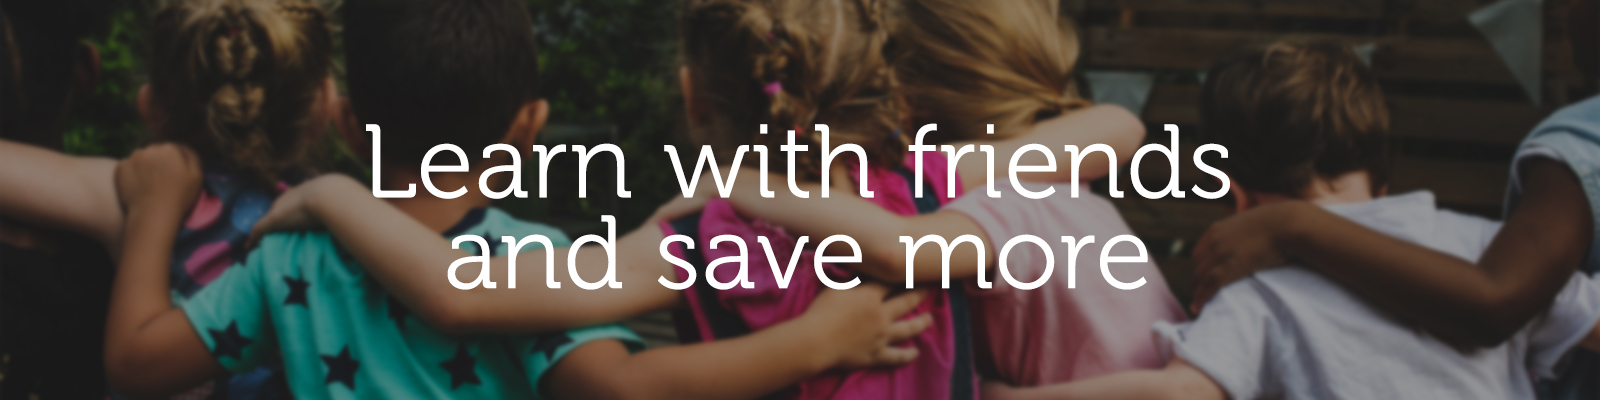 Learn with friends and save more.